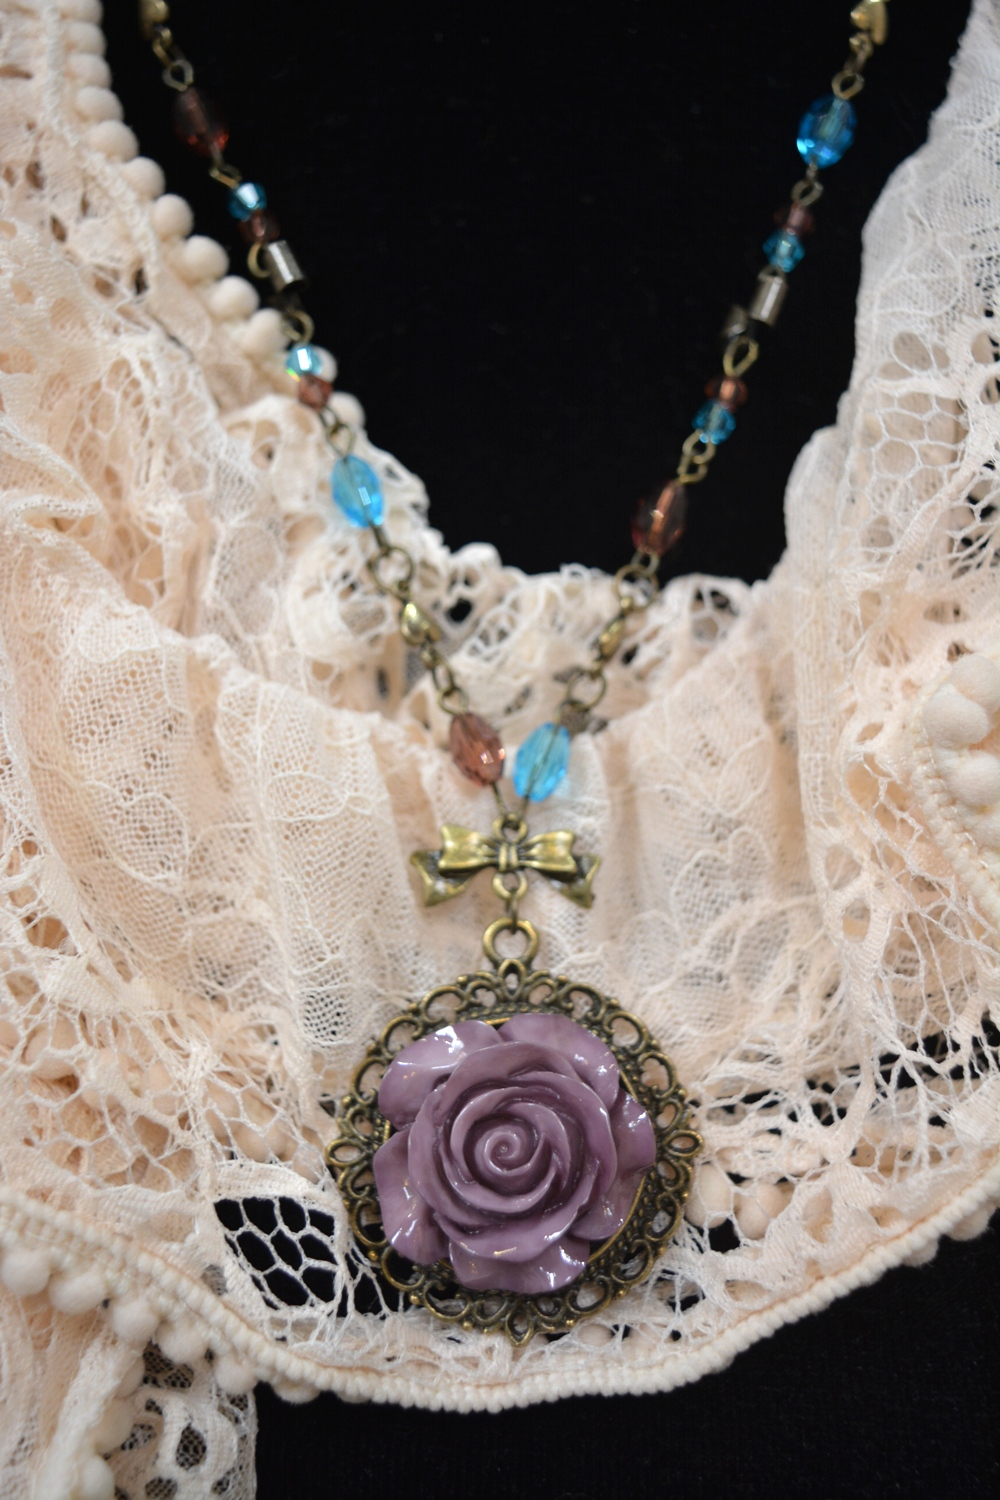 Lavender Rose Pendant Necklace ~ €12.00